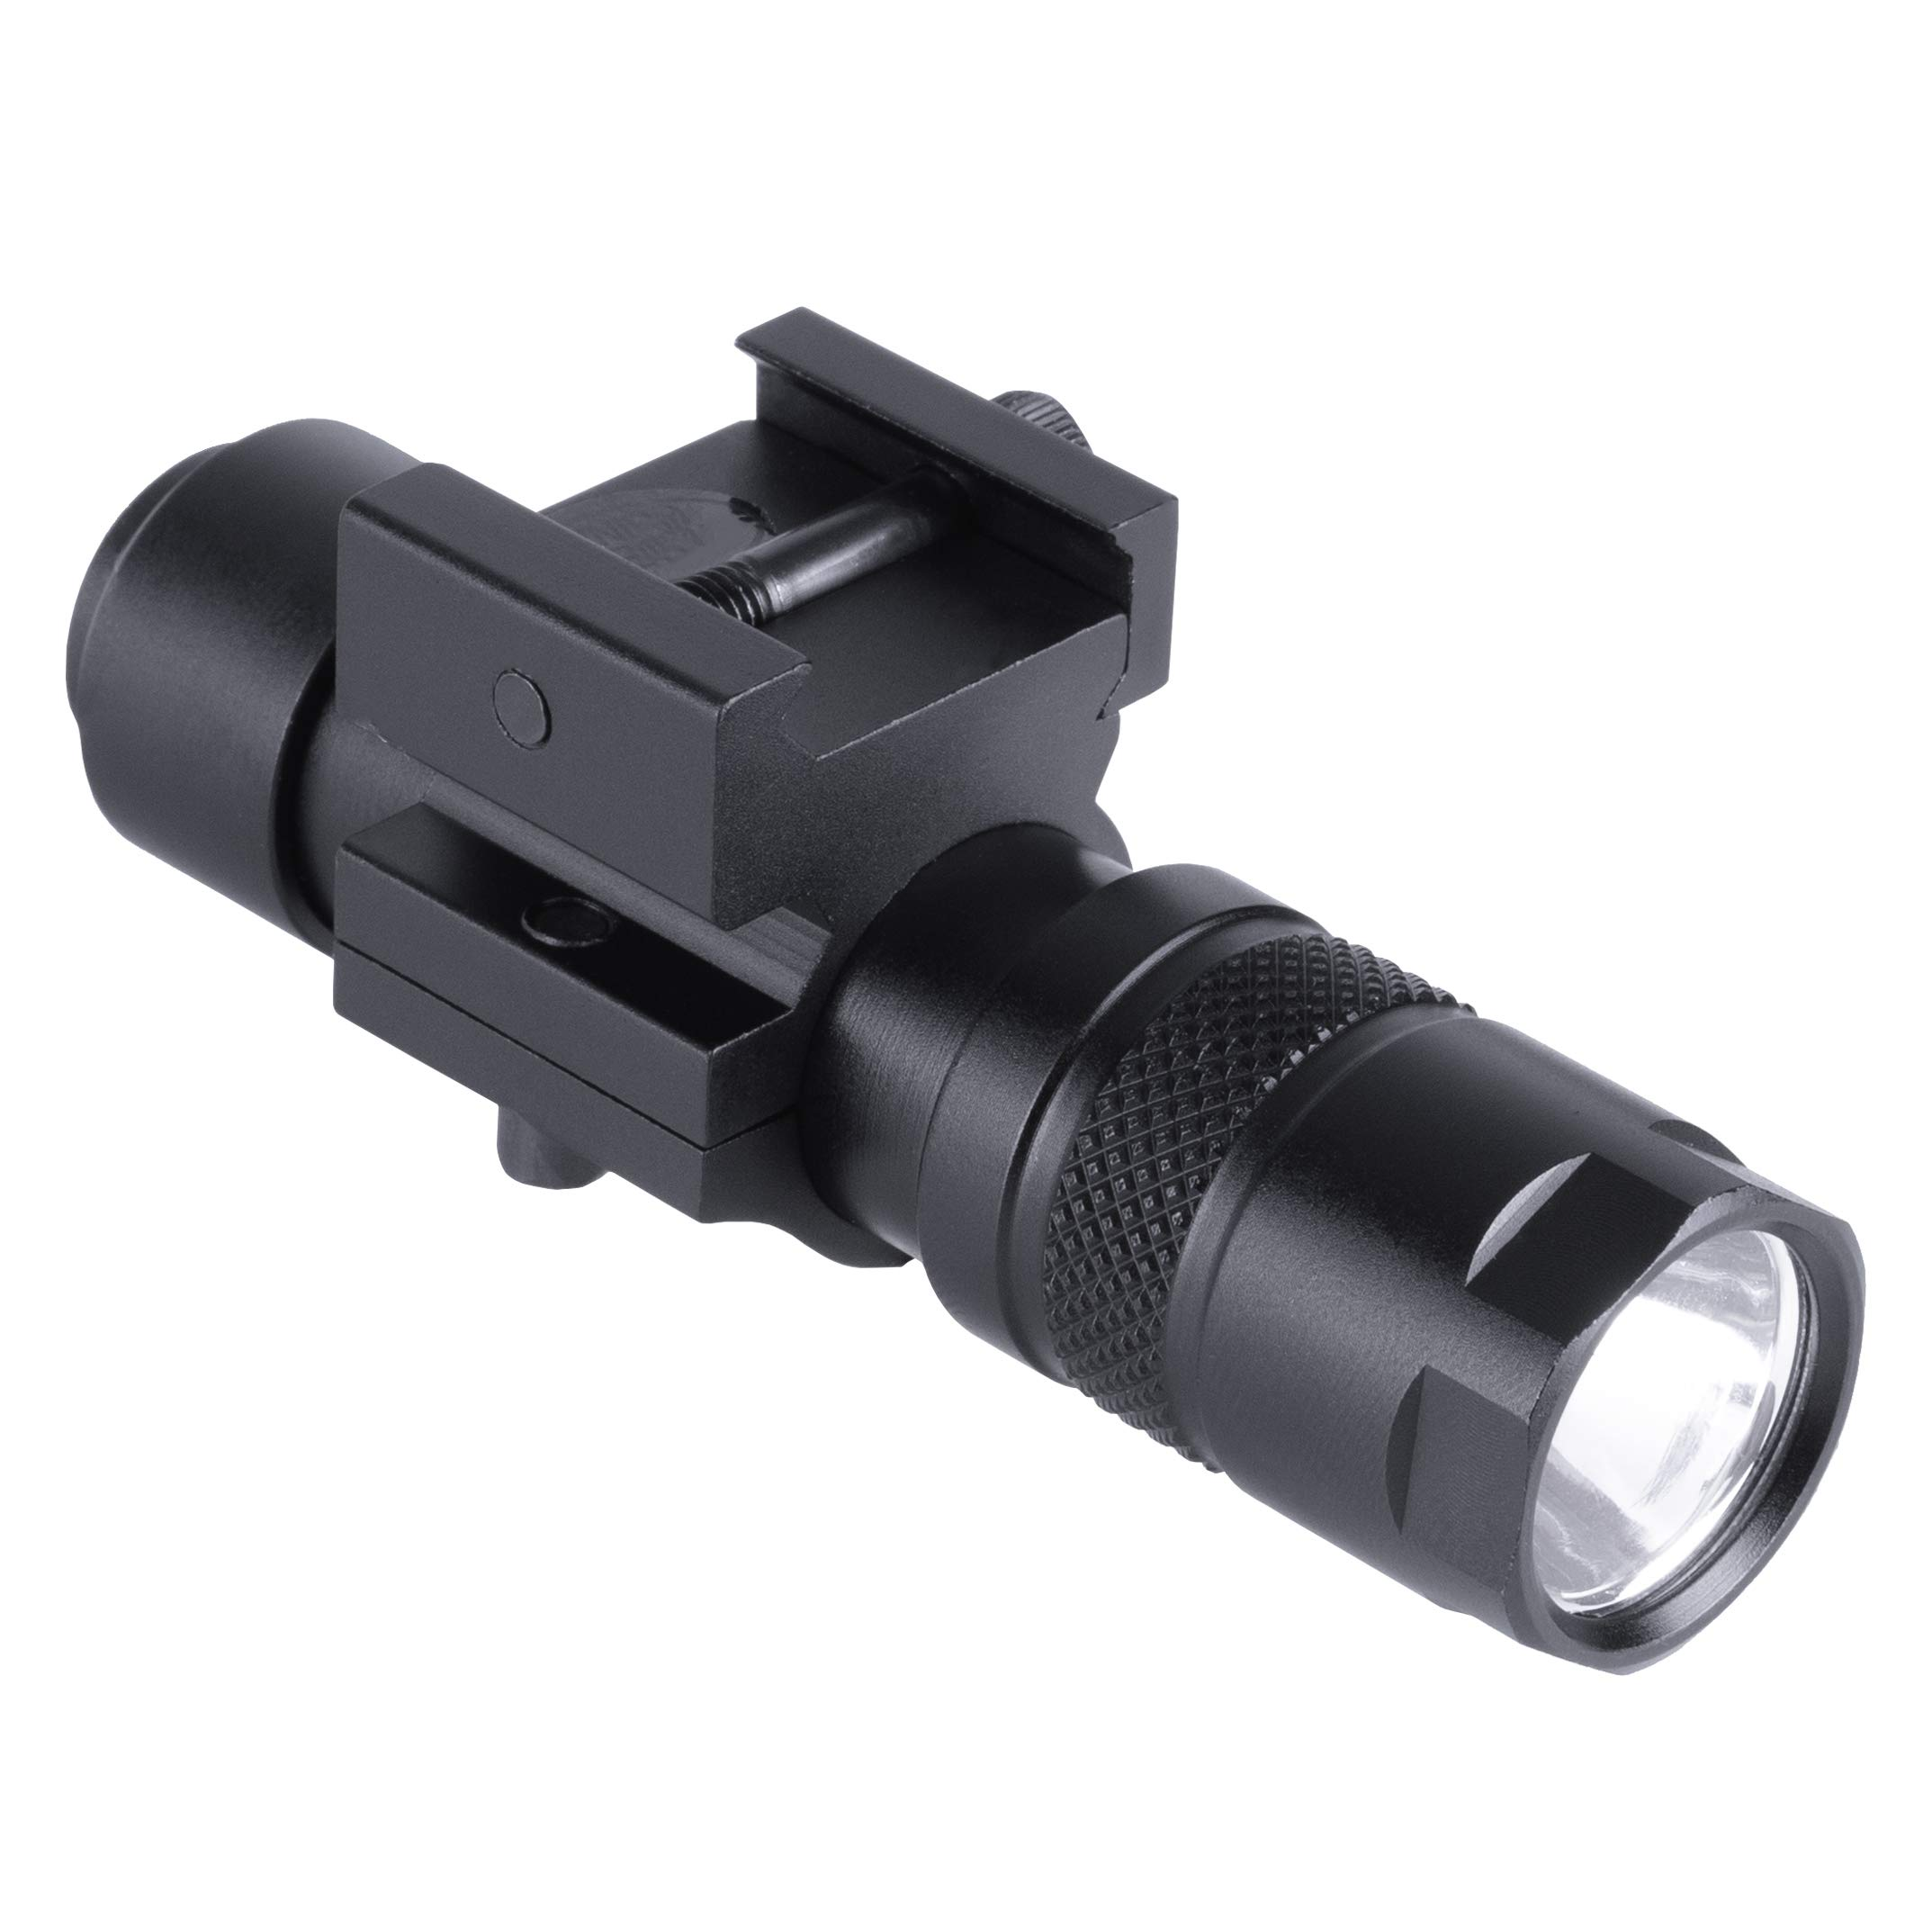 Monstrum Tactical 90 Lumens LED Flashlight with Rail Mount and Detachable Remote Pressure Switch by Monstrum